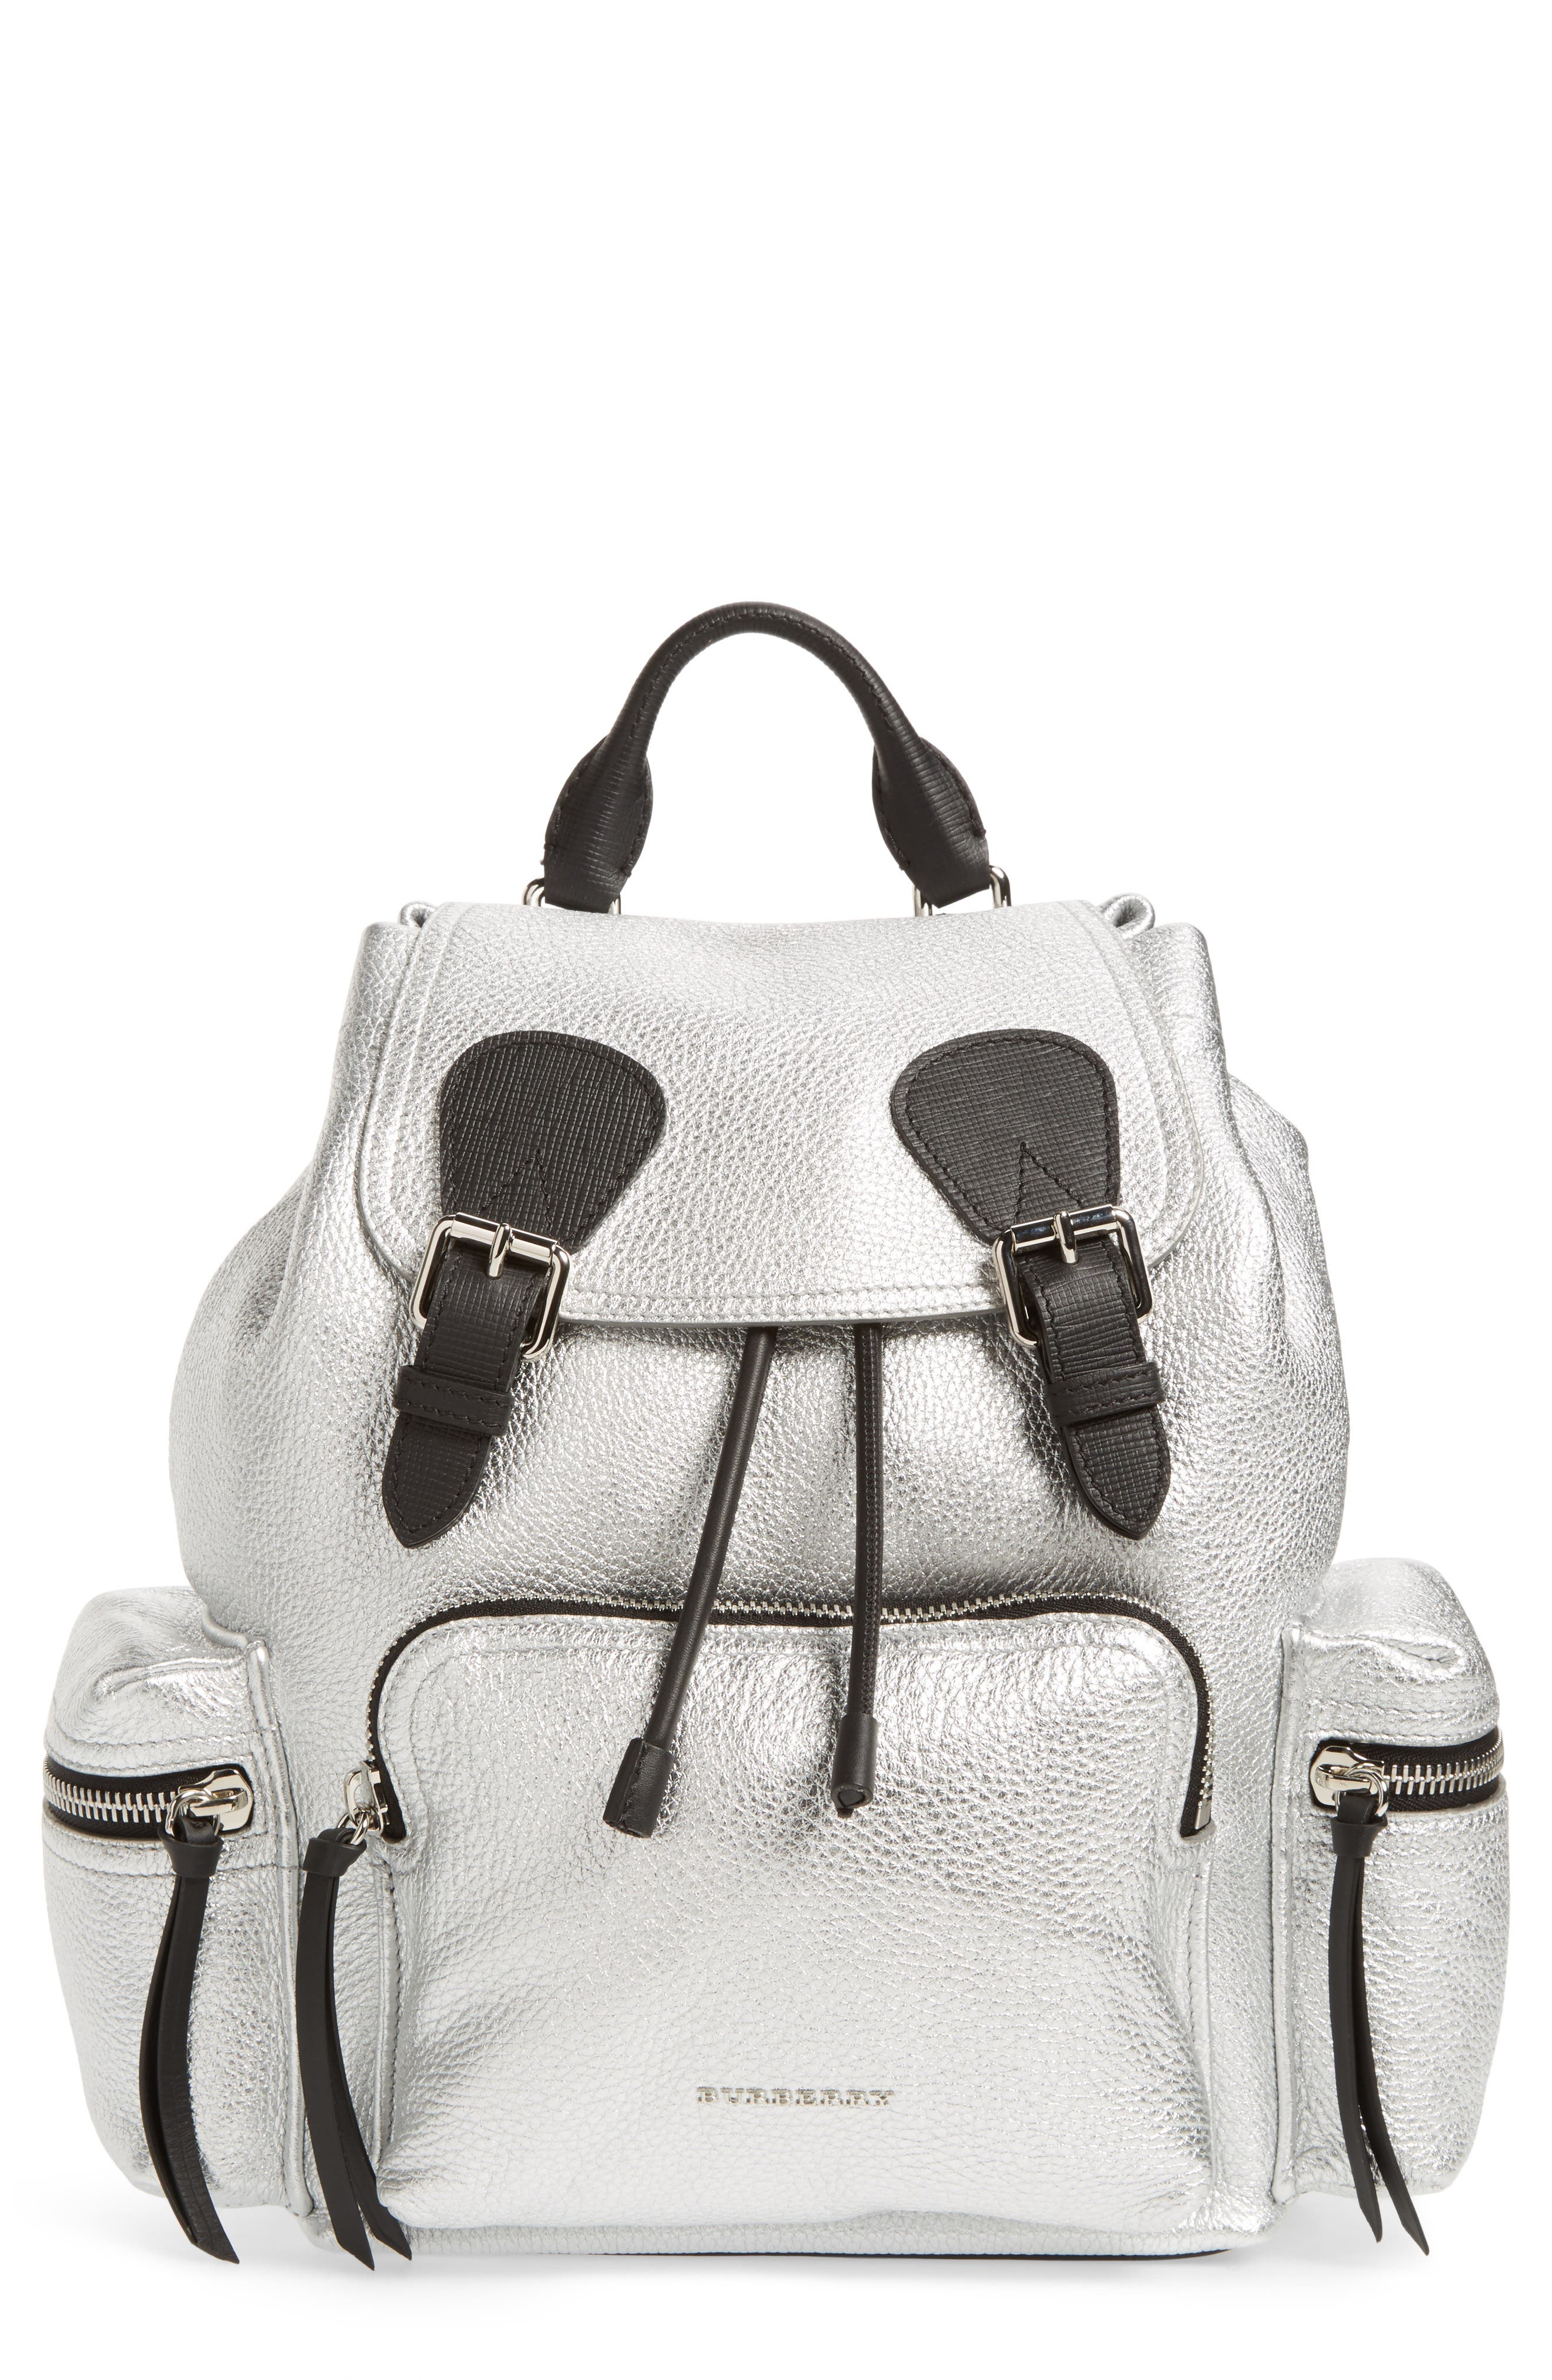 Medium Rucksack Metallic Leather Backpack,                             Main thumbnail 1, color,                             040